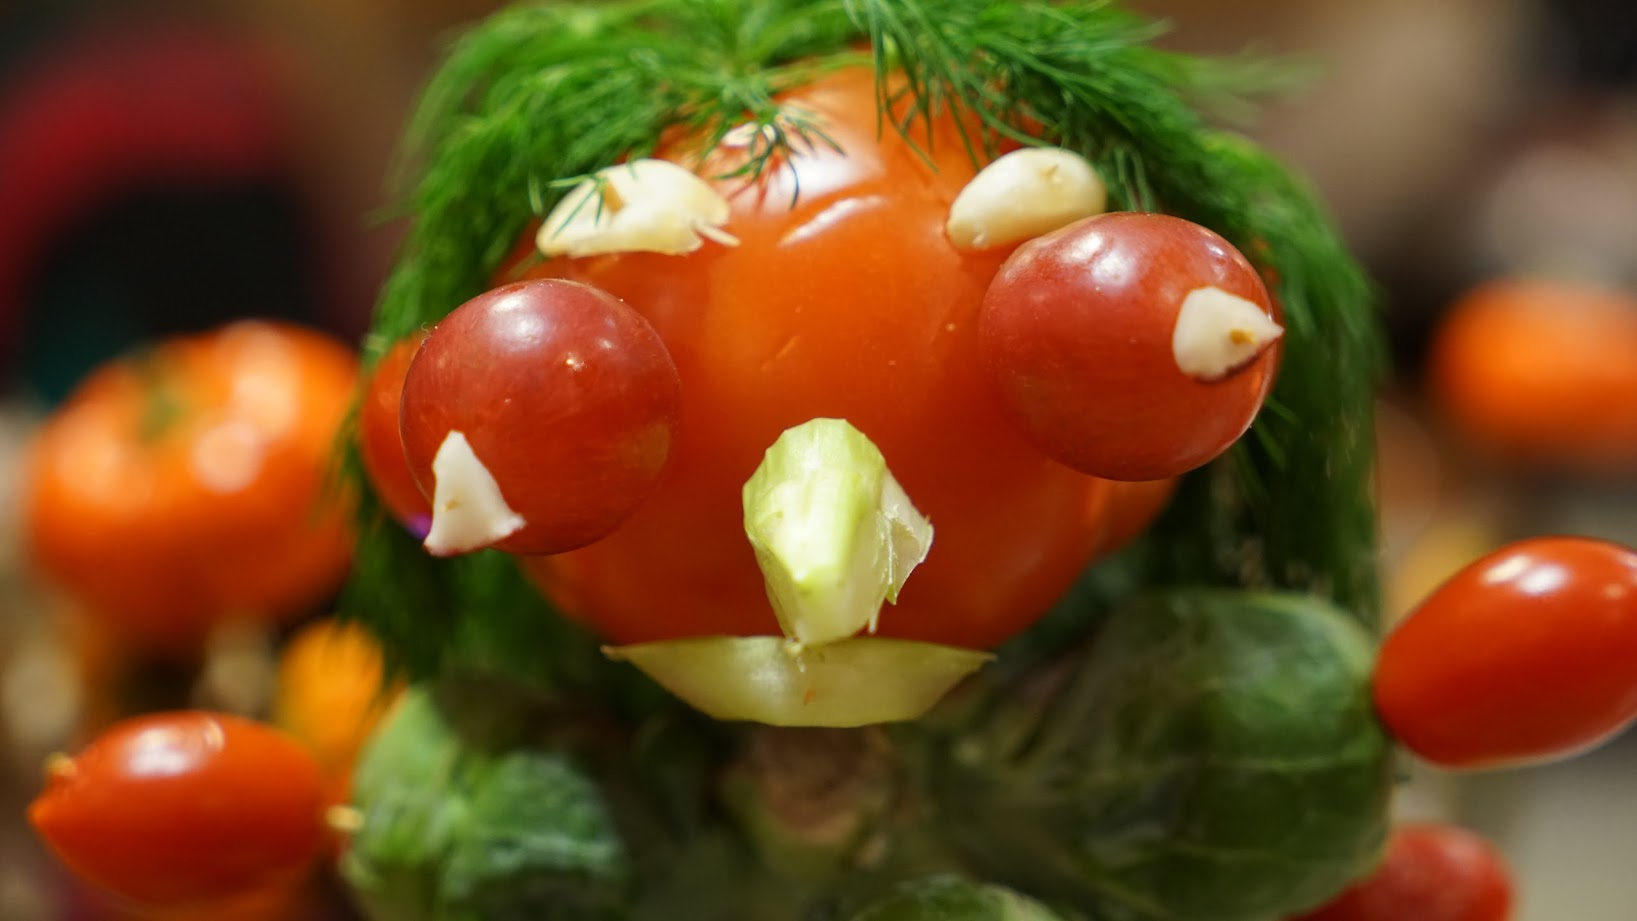 Happy Halloween - Scary Tomatoes Come Alive